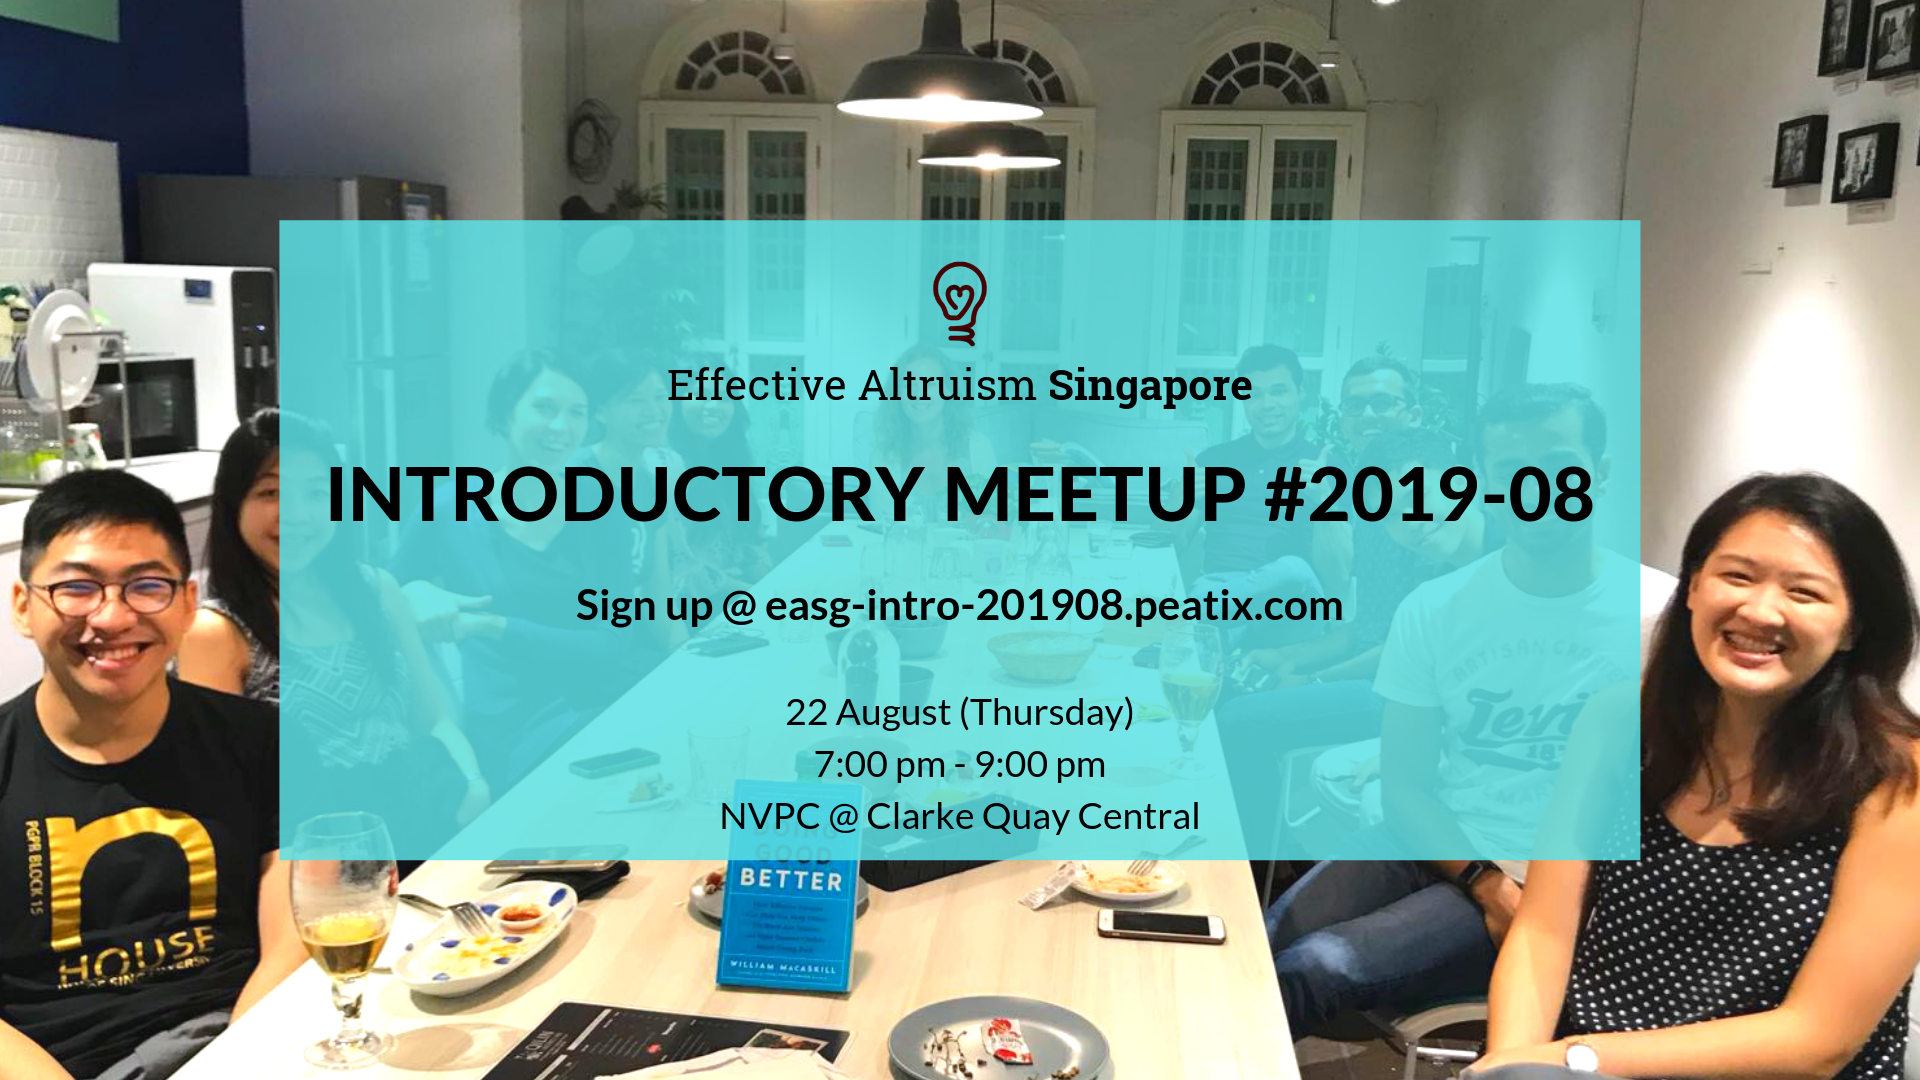 Introductory Meetup #2019-08 Facebook Poster.png